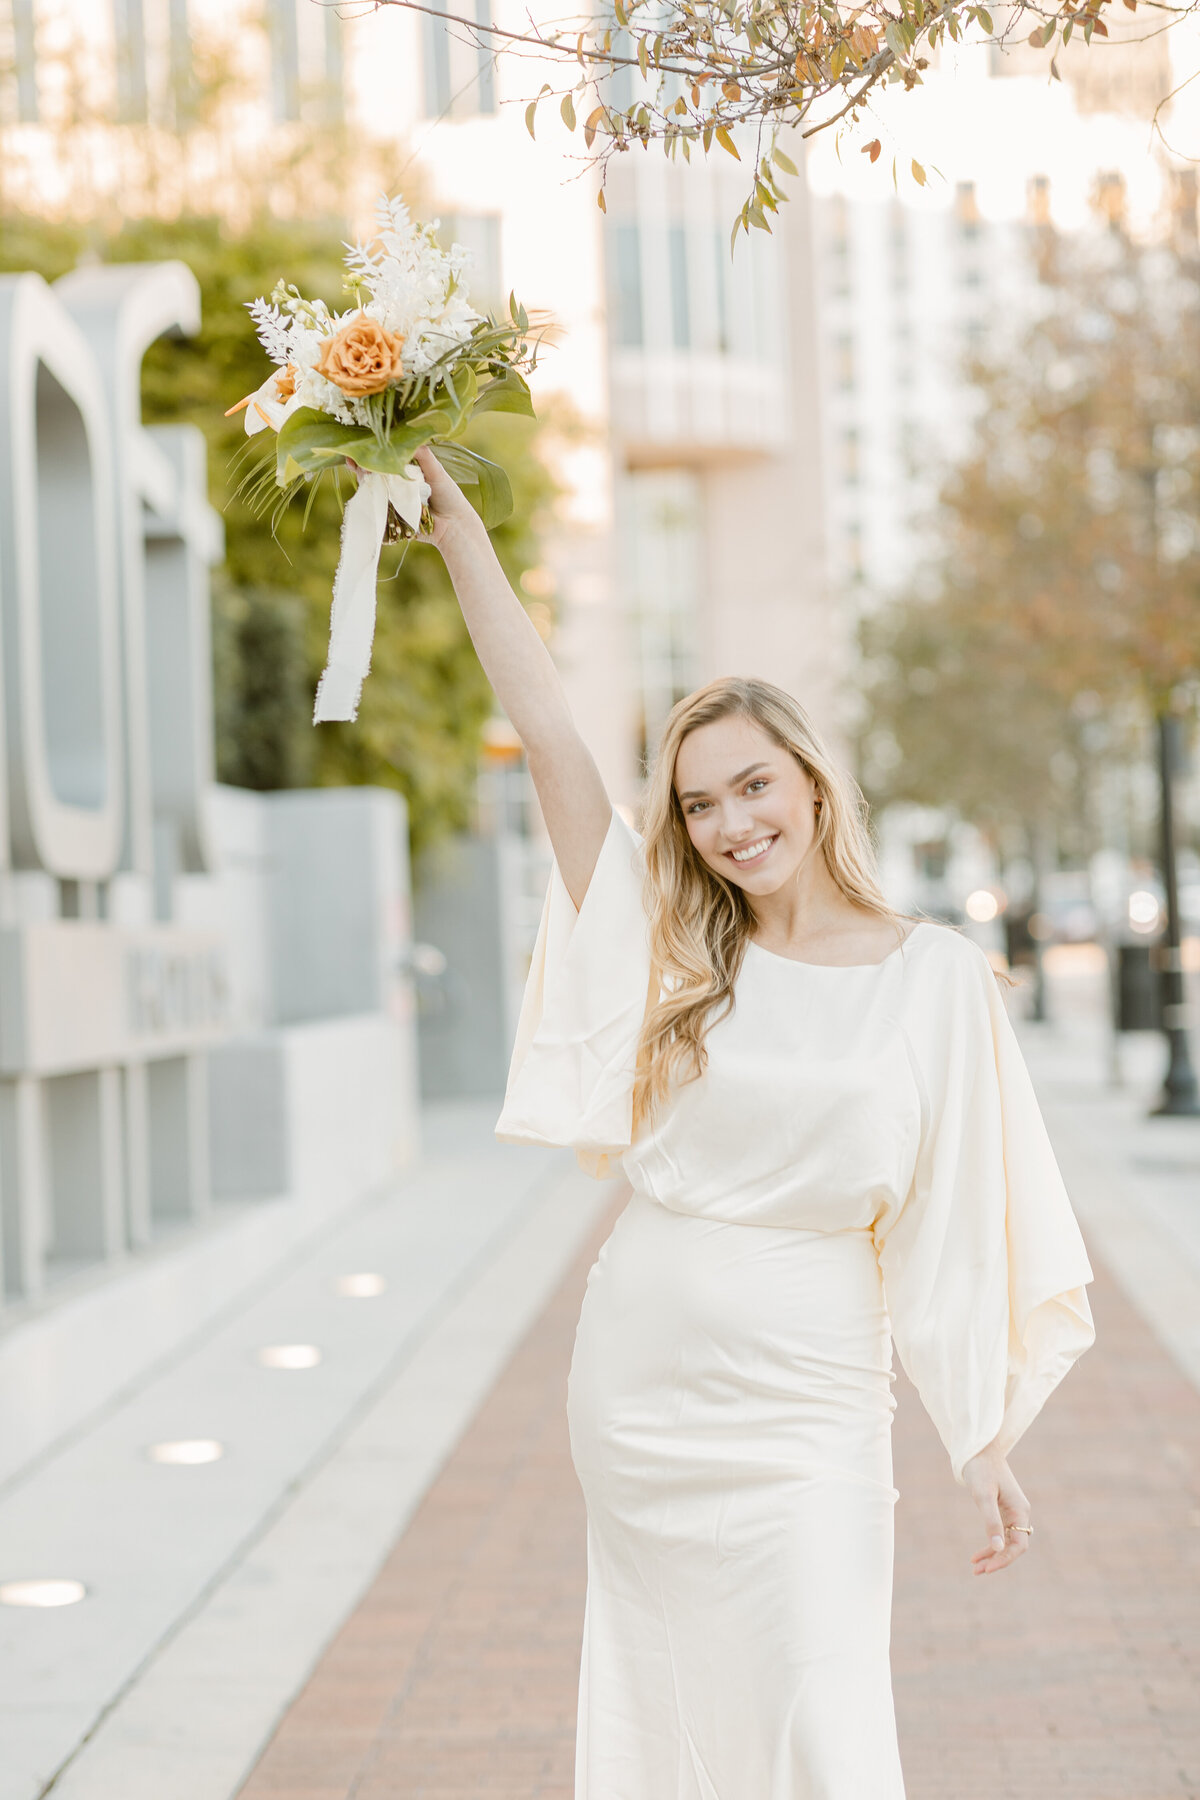 Orlando Bridal Portrait Photography 39